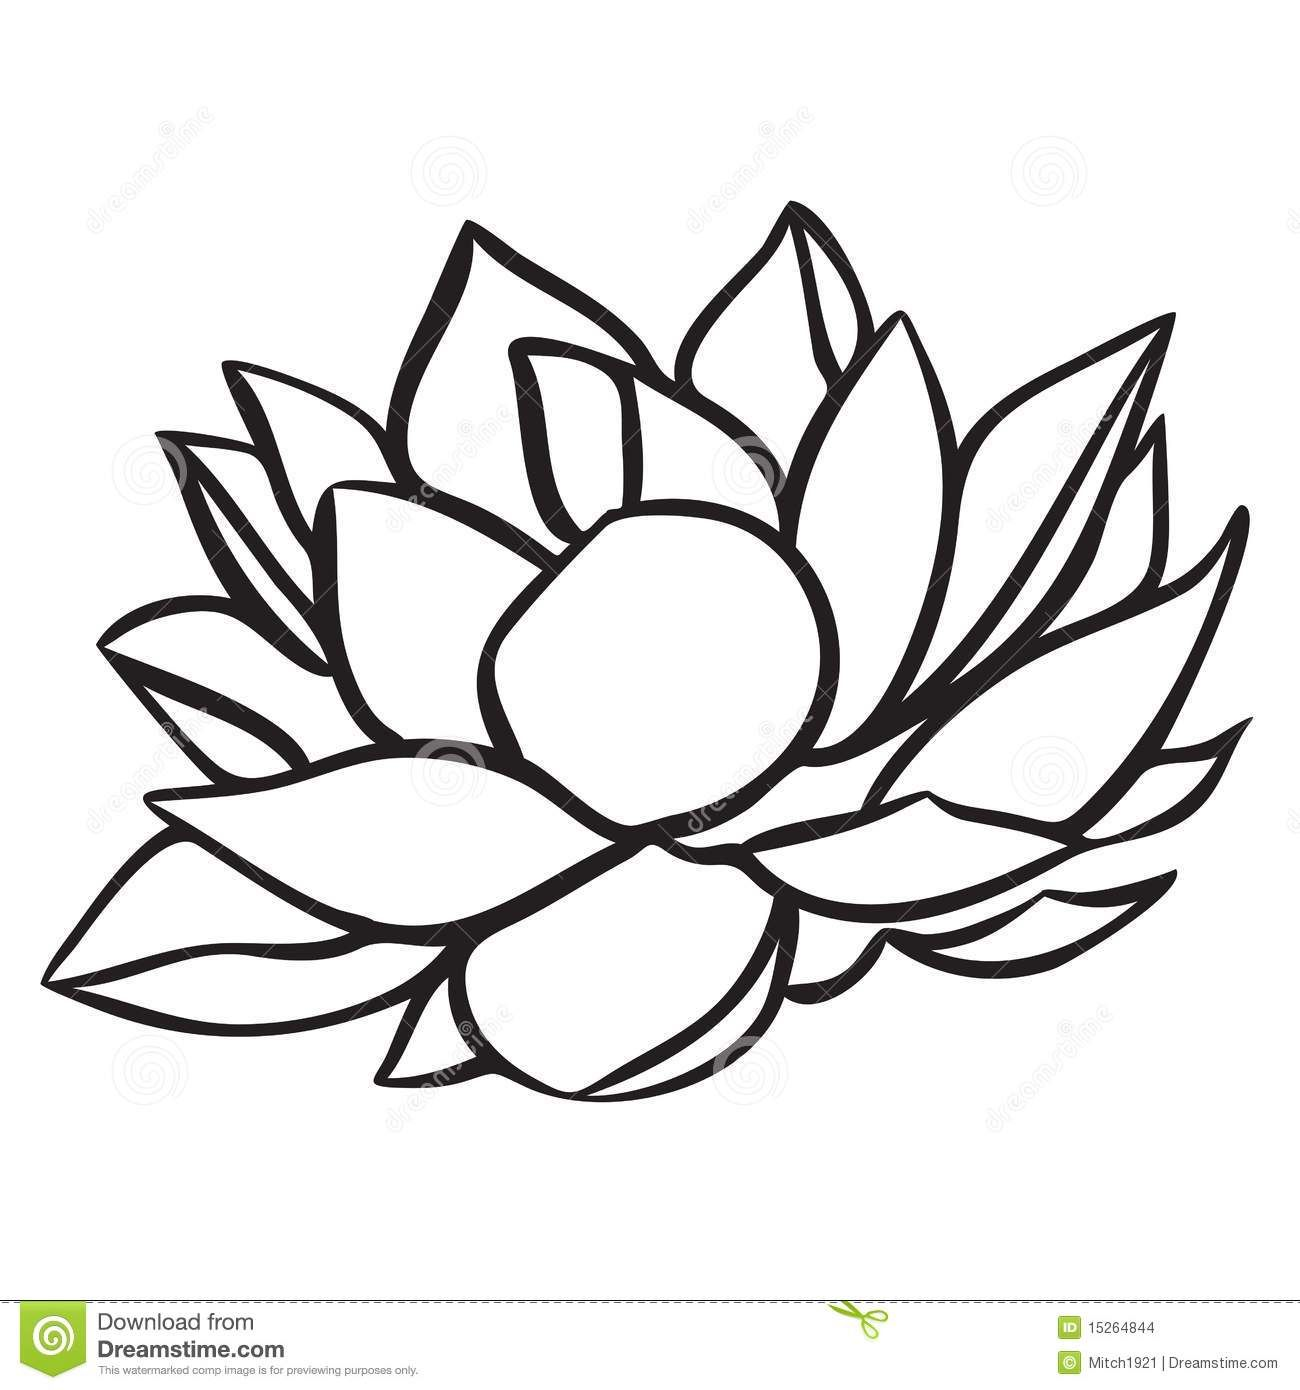 Lotus drawing black and white viewing gallery tattoos and lotus drawing black and white viewing gallery izmirmasajfo